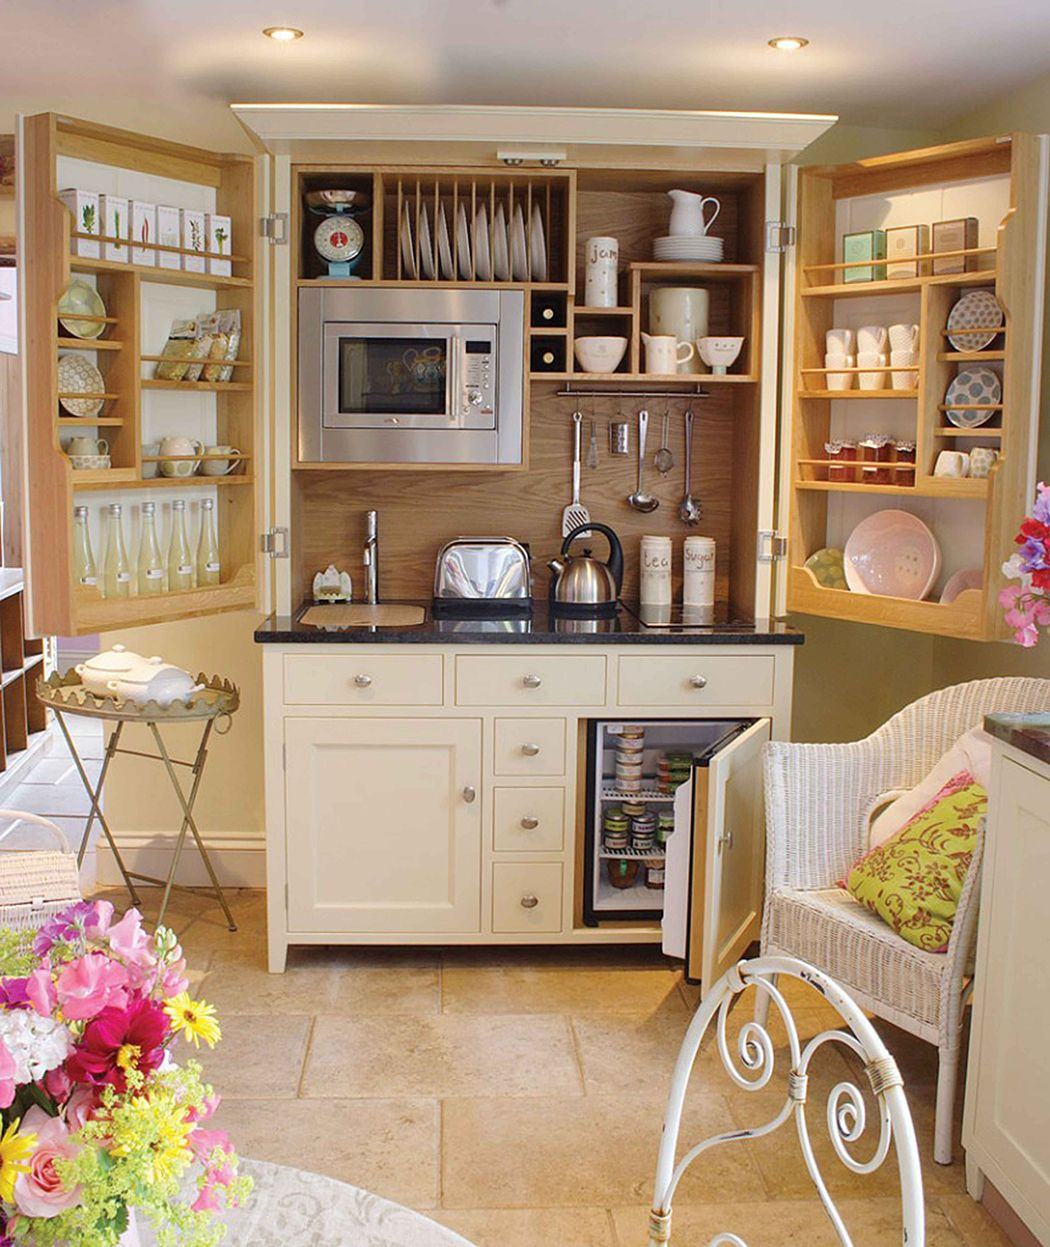 50 best small kitchen ideas and designs for 2016 | kitchens, tiny